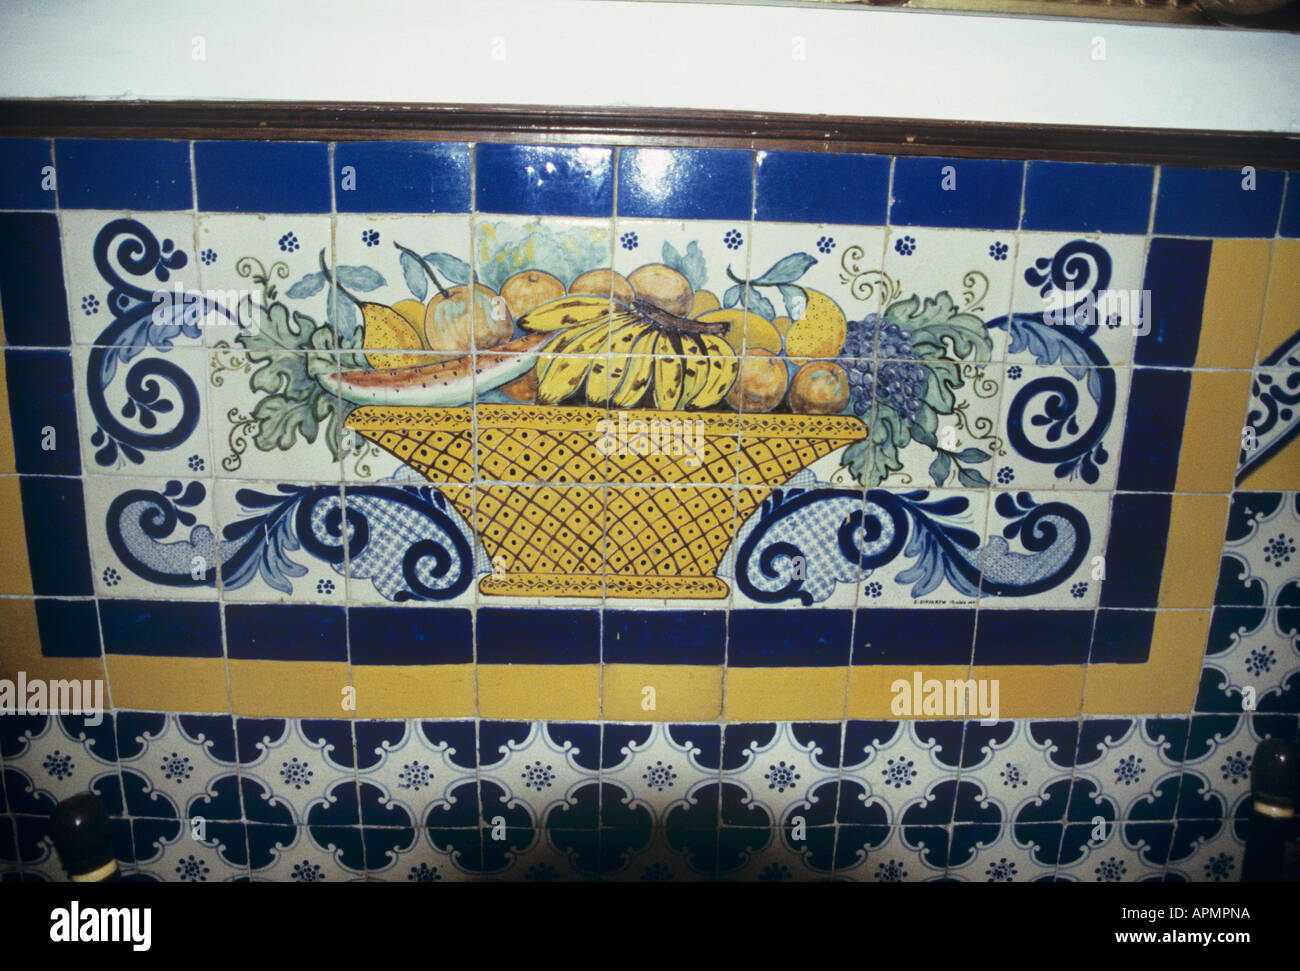 A display of azulejos tiles decorating the interior of Mexico City s Cafe de Tacuba situated in a former convent - Stock Image